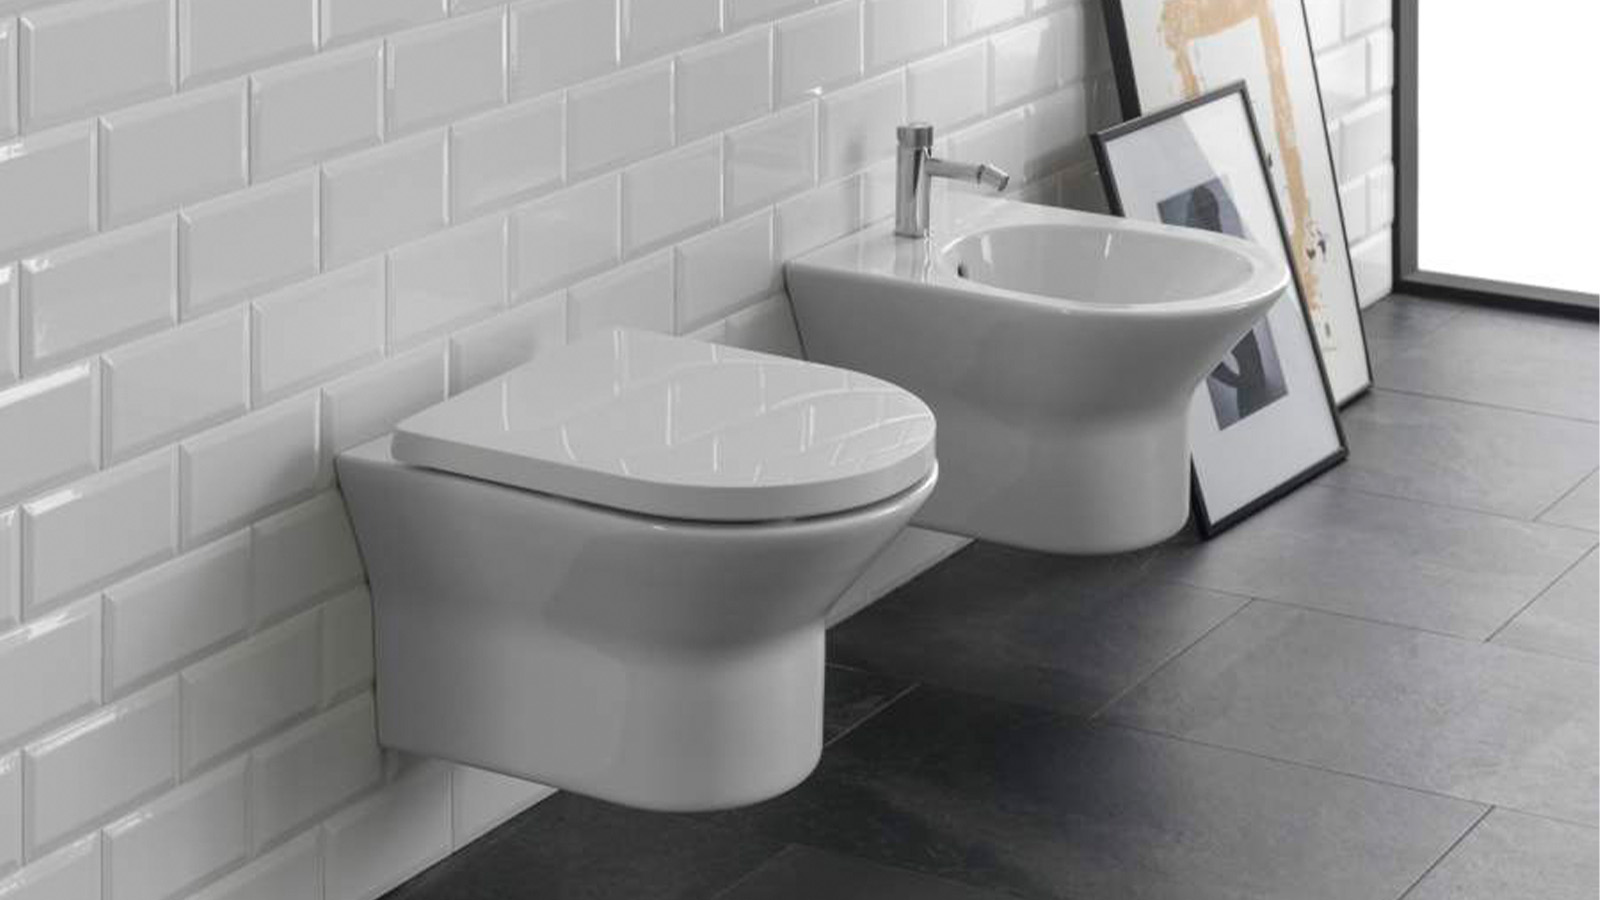 The concealed toilet cistern, a guide to choosing the right one